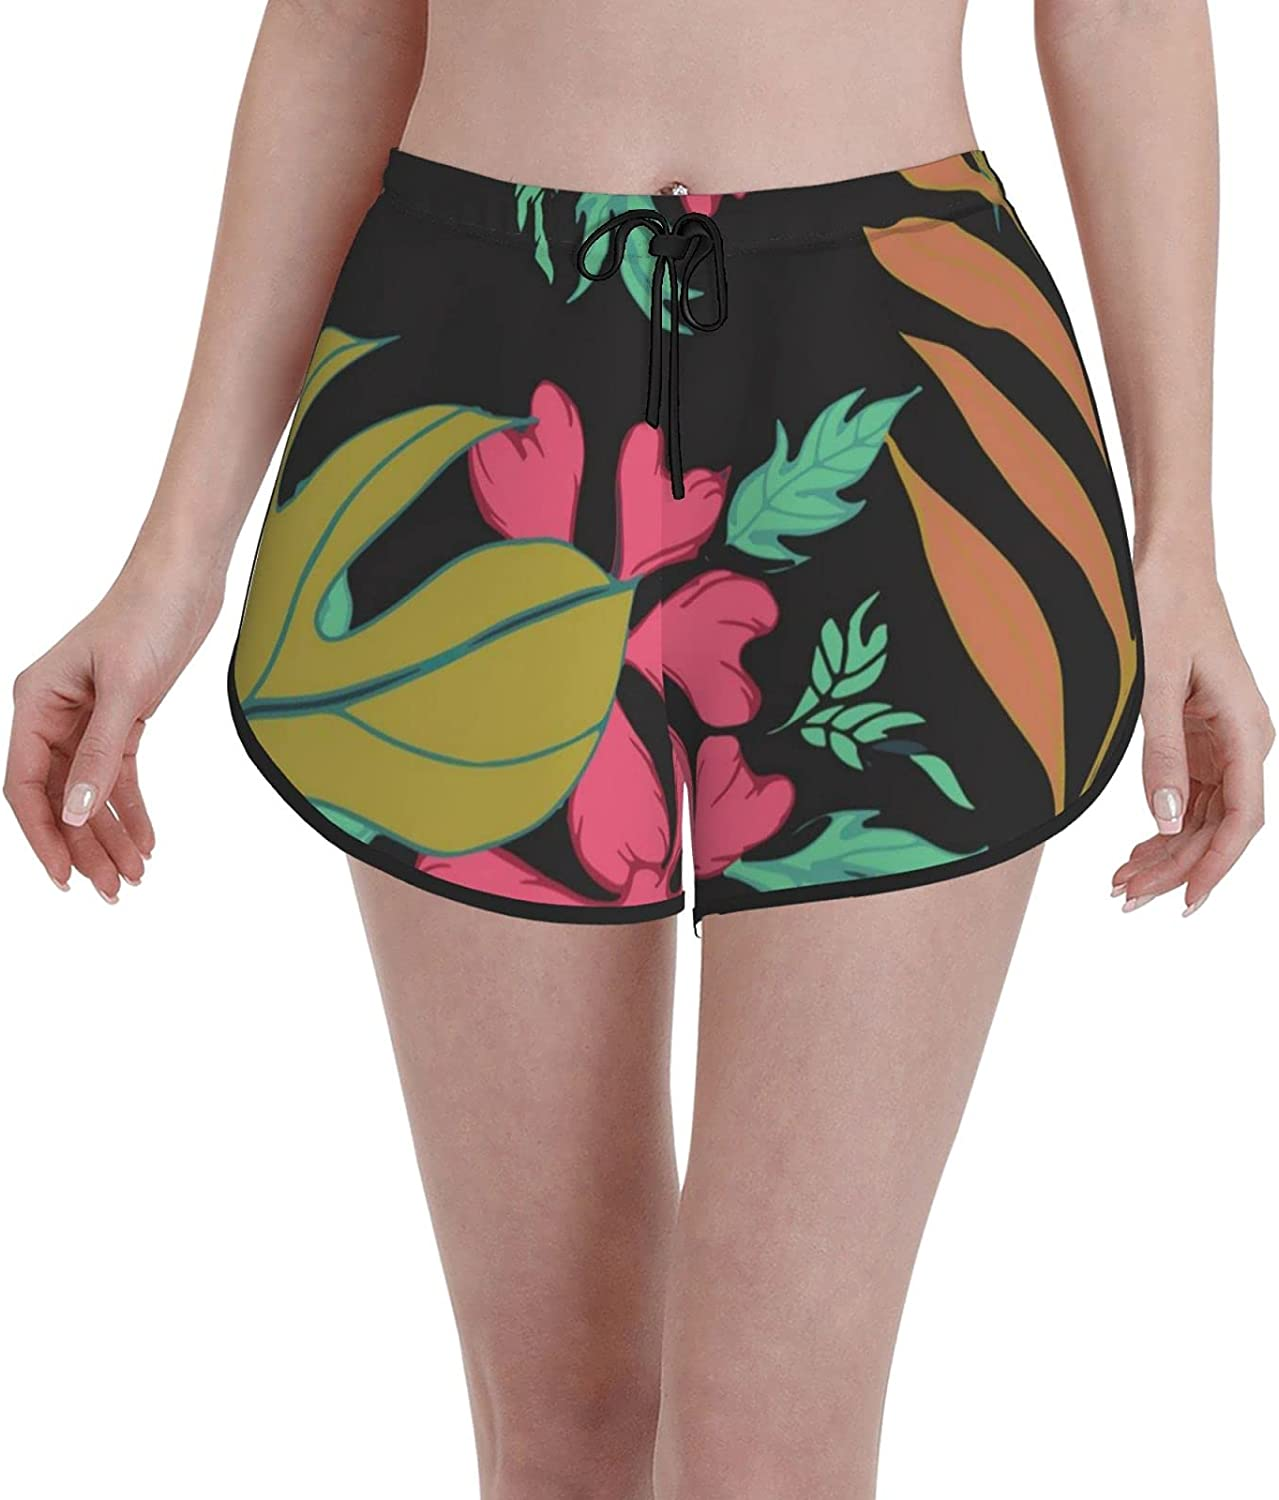 35% OFF Swim Shorts Tropical Plant Leaves Casual Short Sports Daily bargain sale Trunk